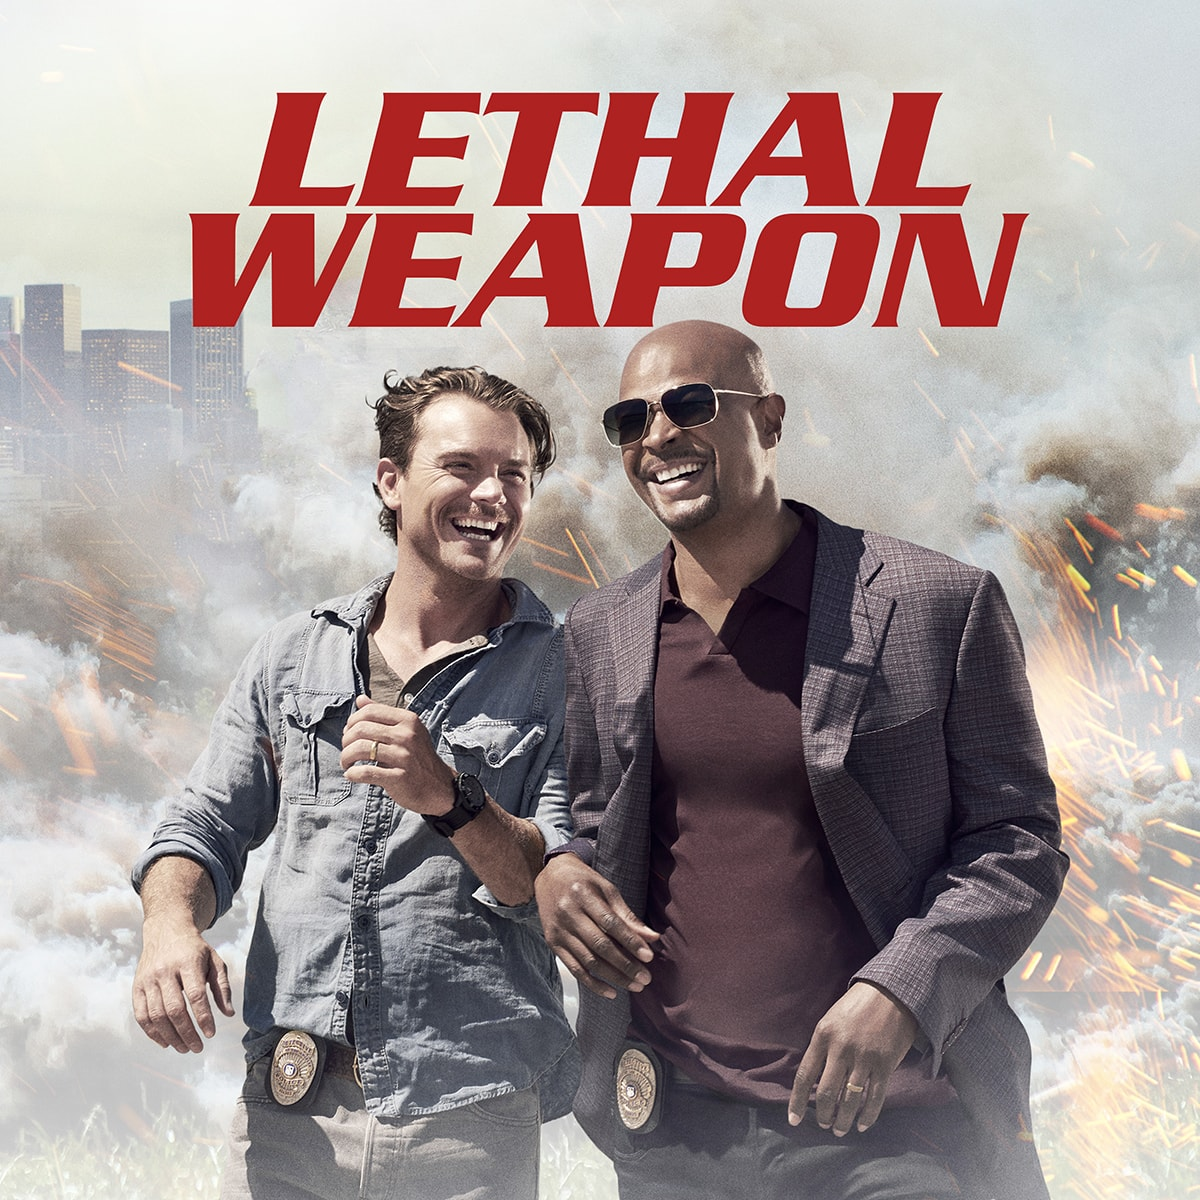 lethal weapon - Lethal Weapon Christmas